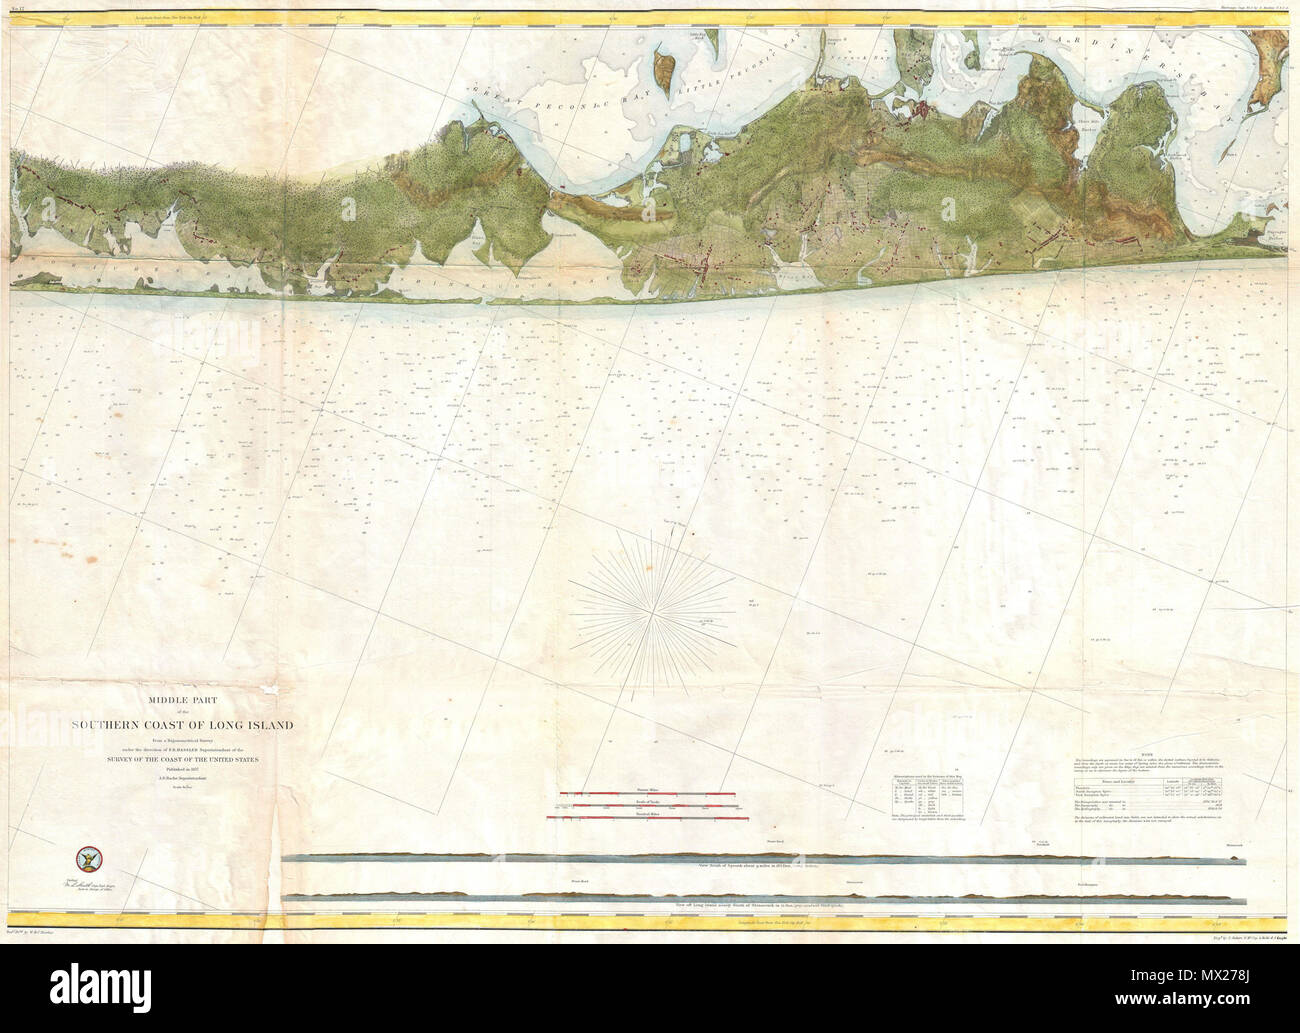 Map Of Quogue New York.Middle Part Of The Southern Coast Of Long Island English This Is